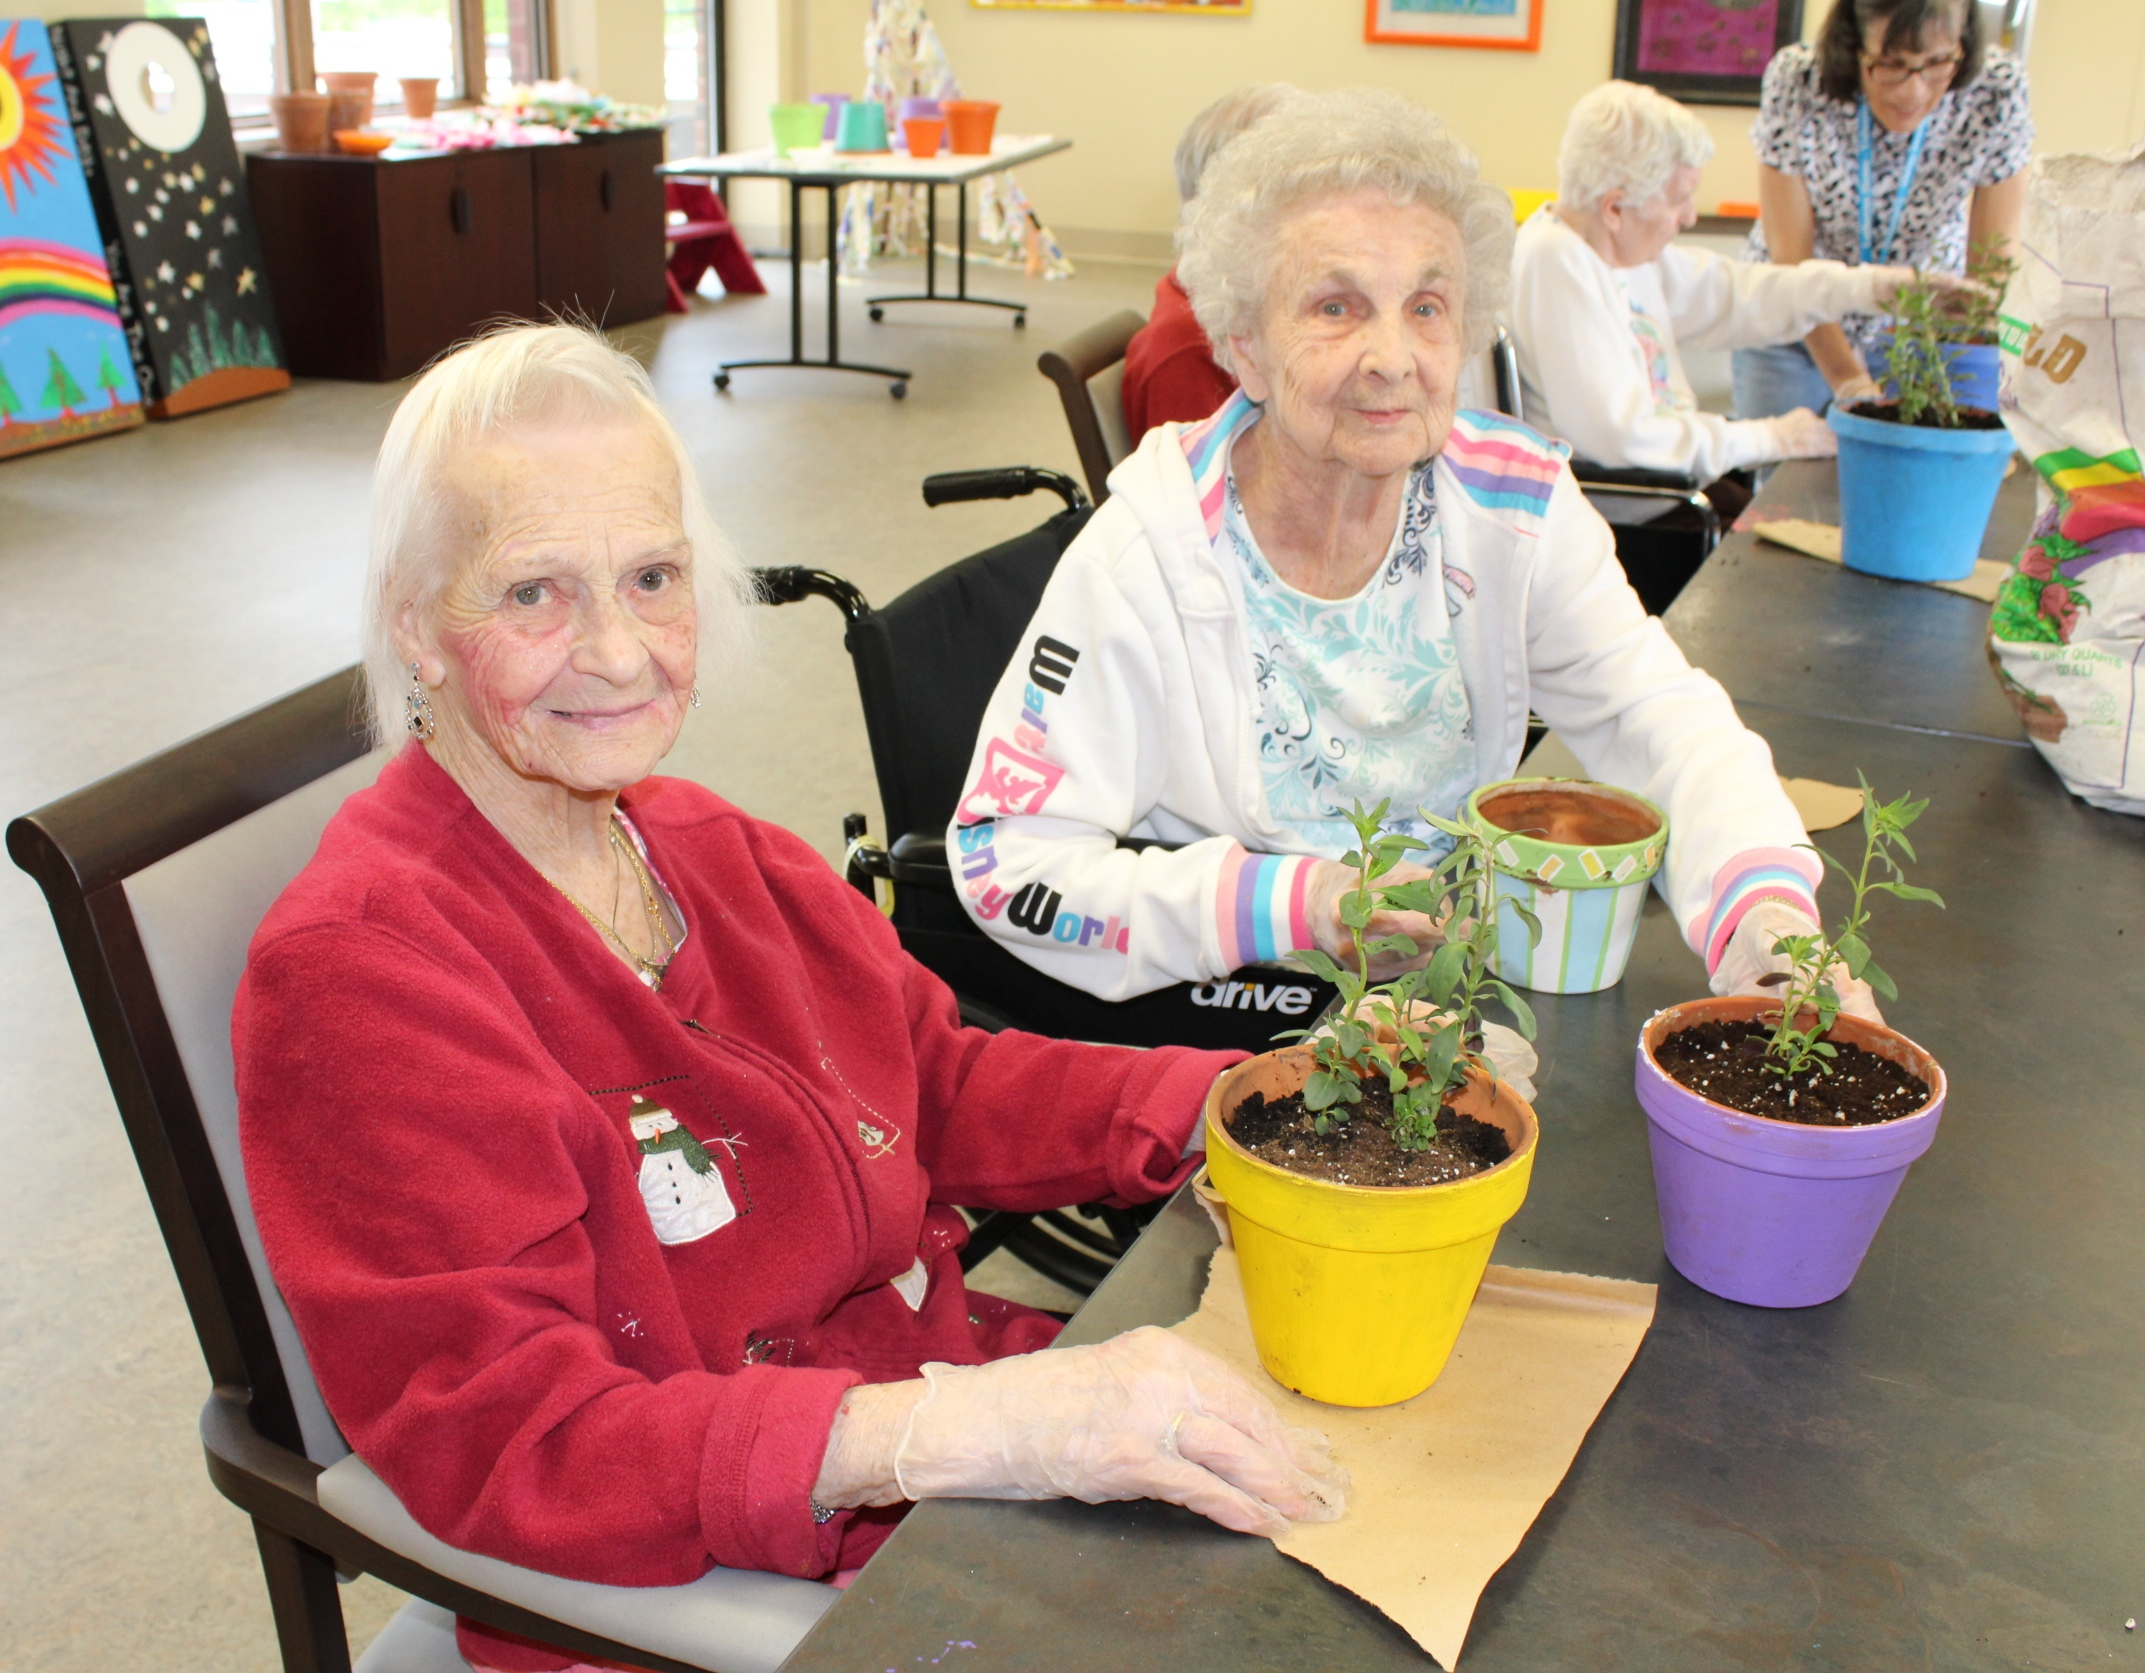 Assisted Living residents planted flowers in colorful pots for the Seasons Studio!